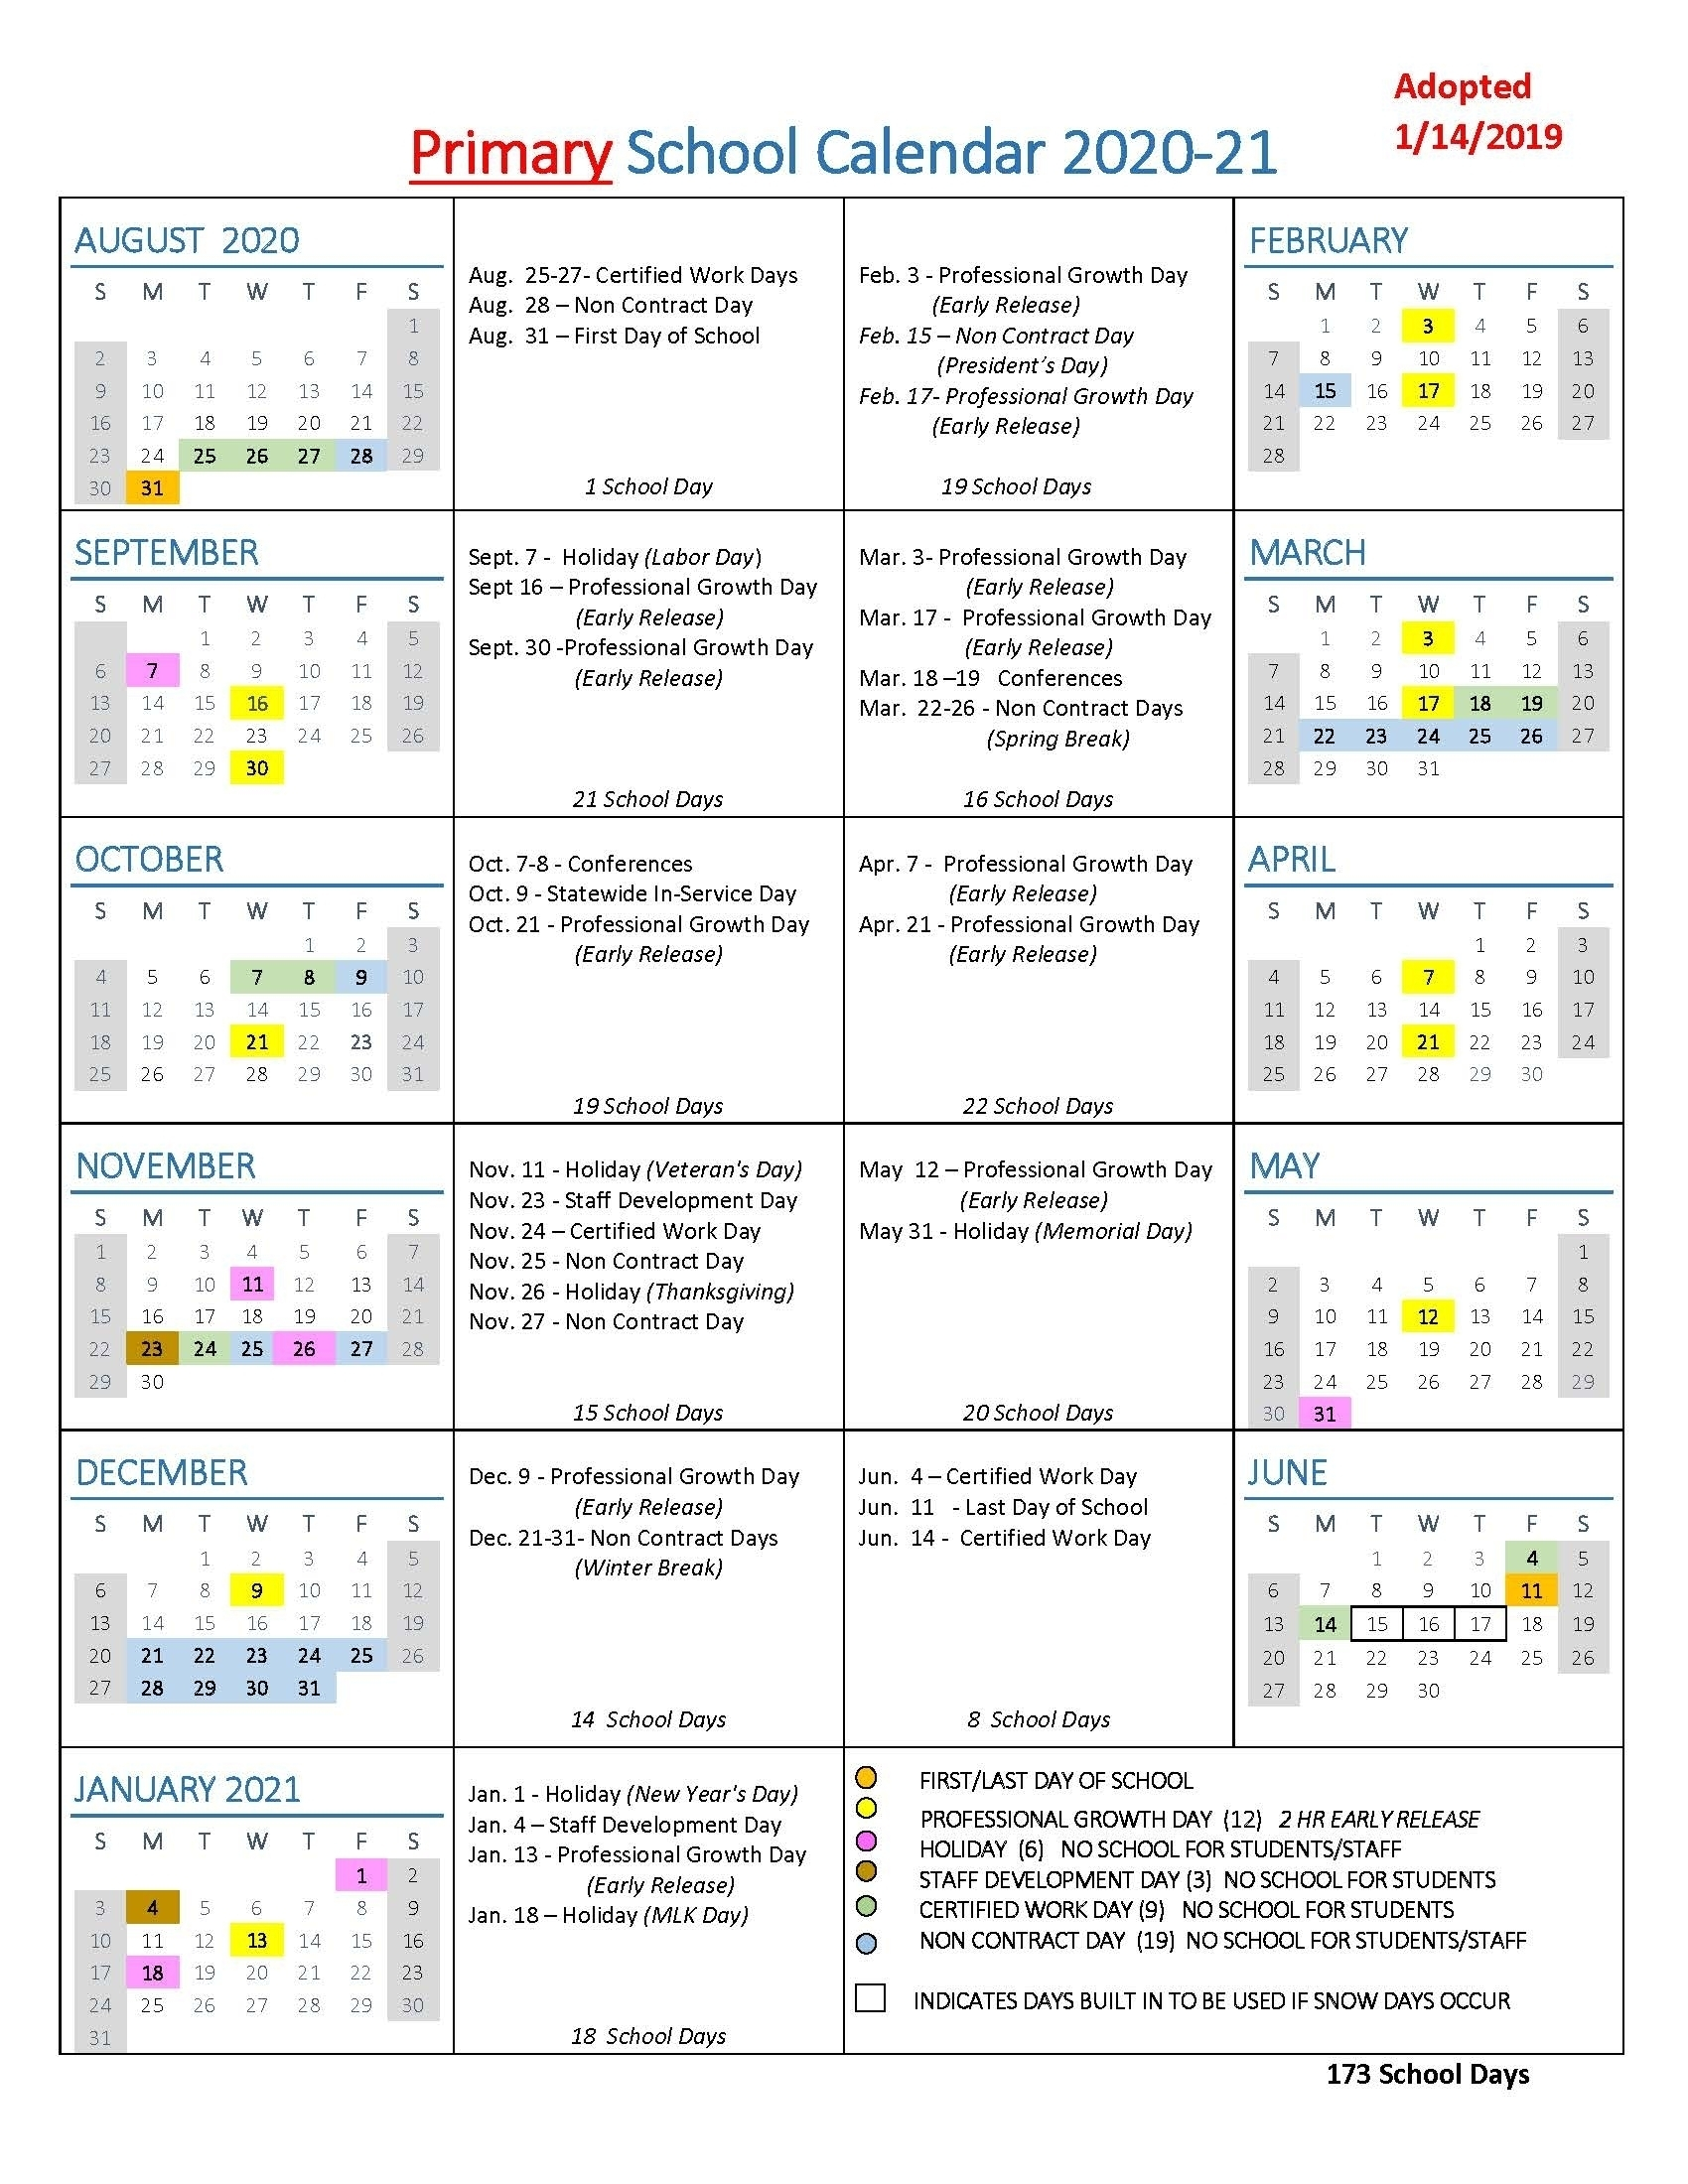 Calendar With All The Special Days In 2020 - Calendar intended for Calendar Of Special Days 2020